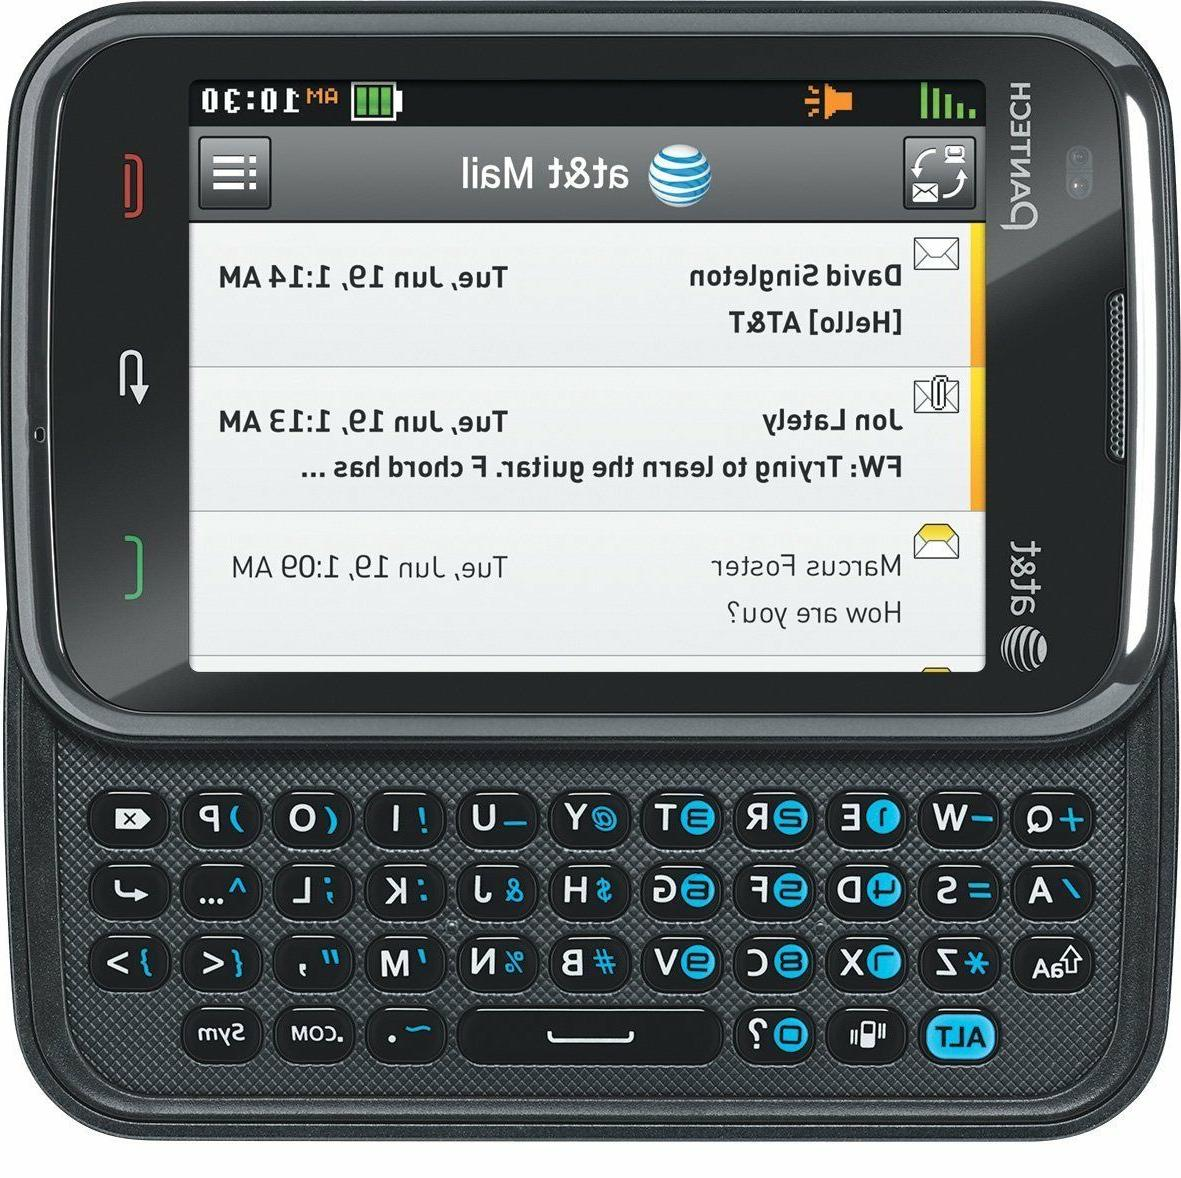 renue p6030 at and t black qwerty